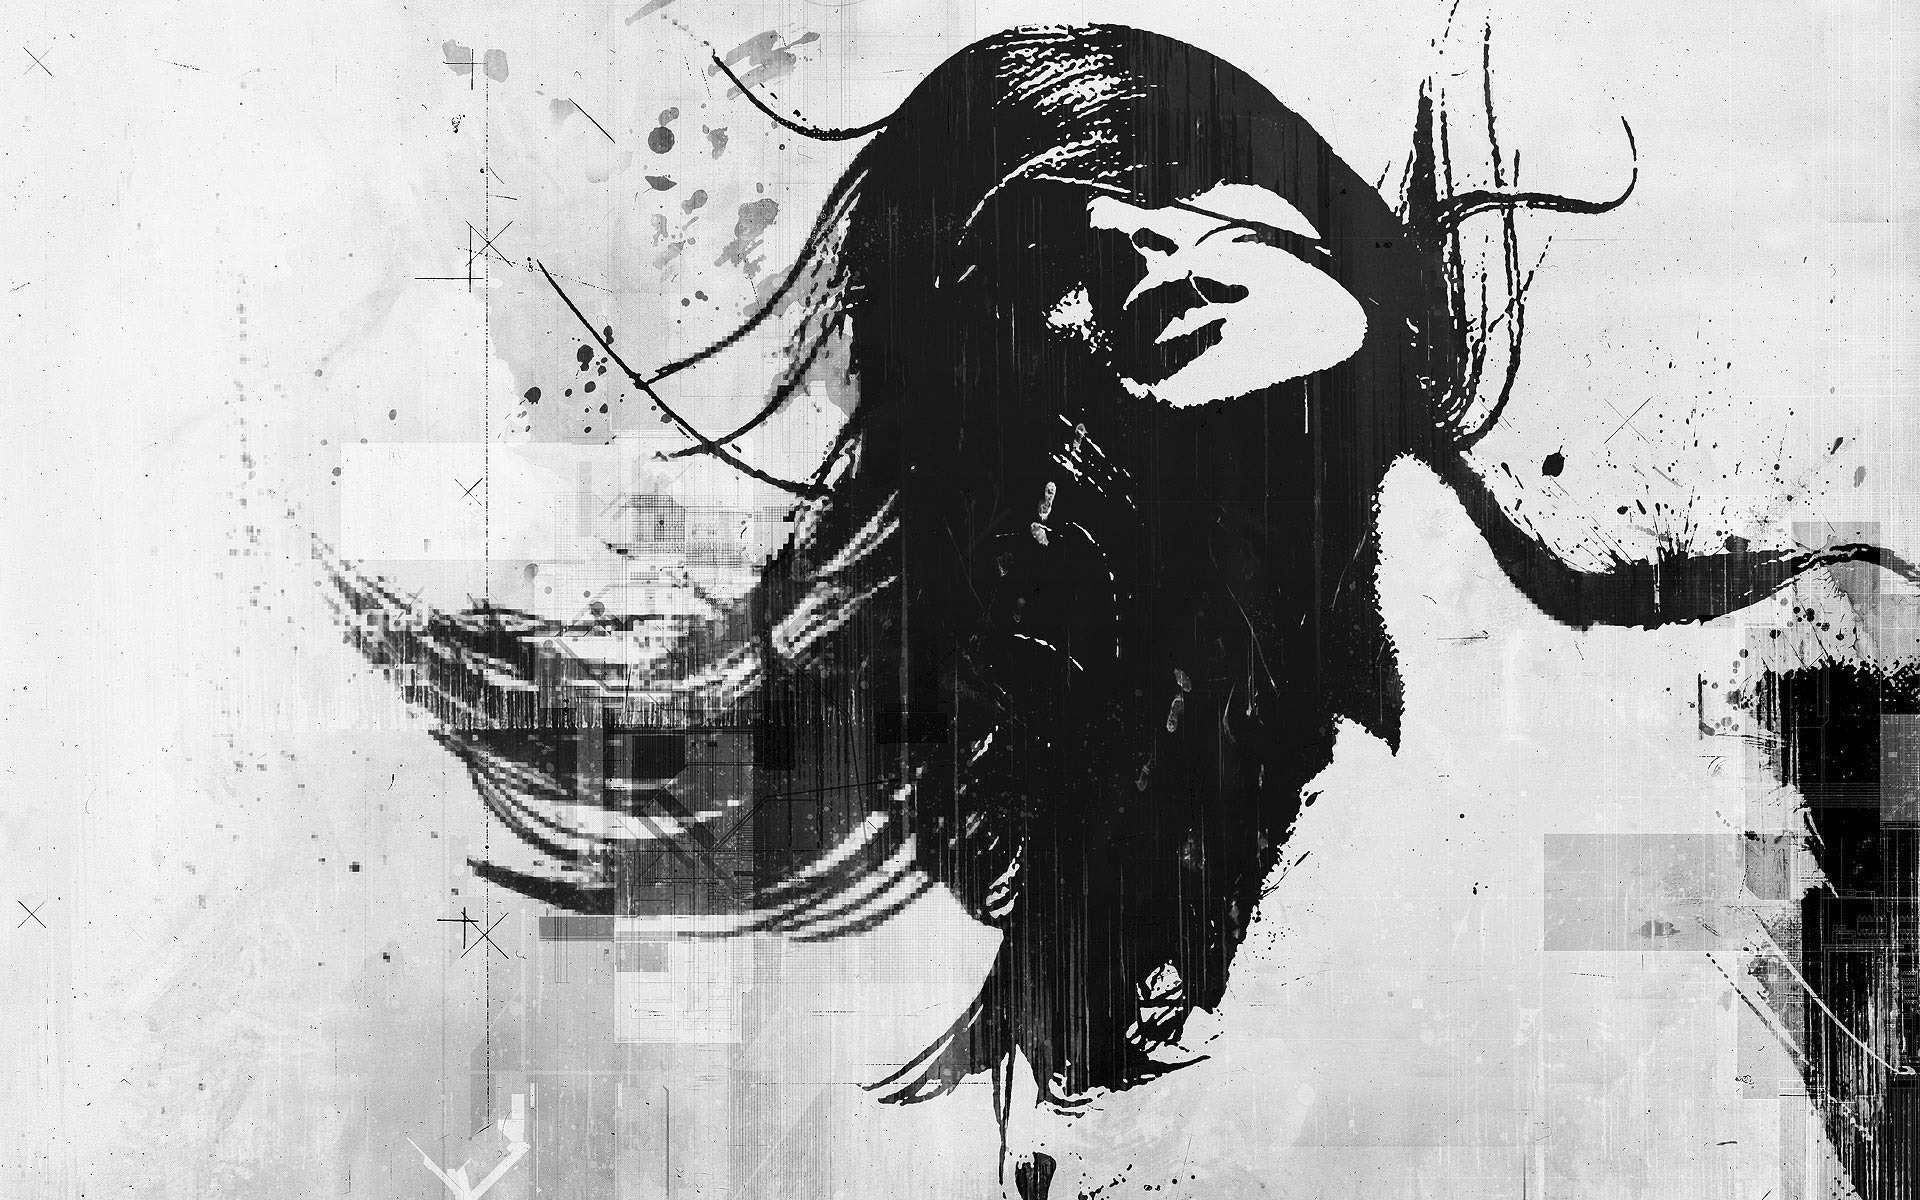 Hair Wallpapers Photos And Desktop Backgrounds Up To 8K